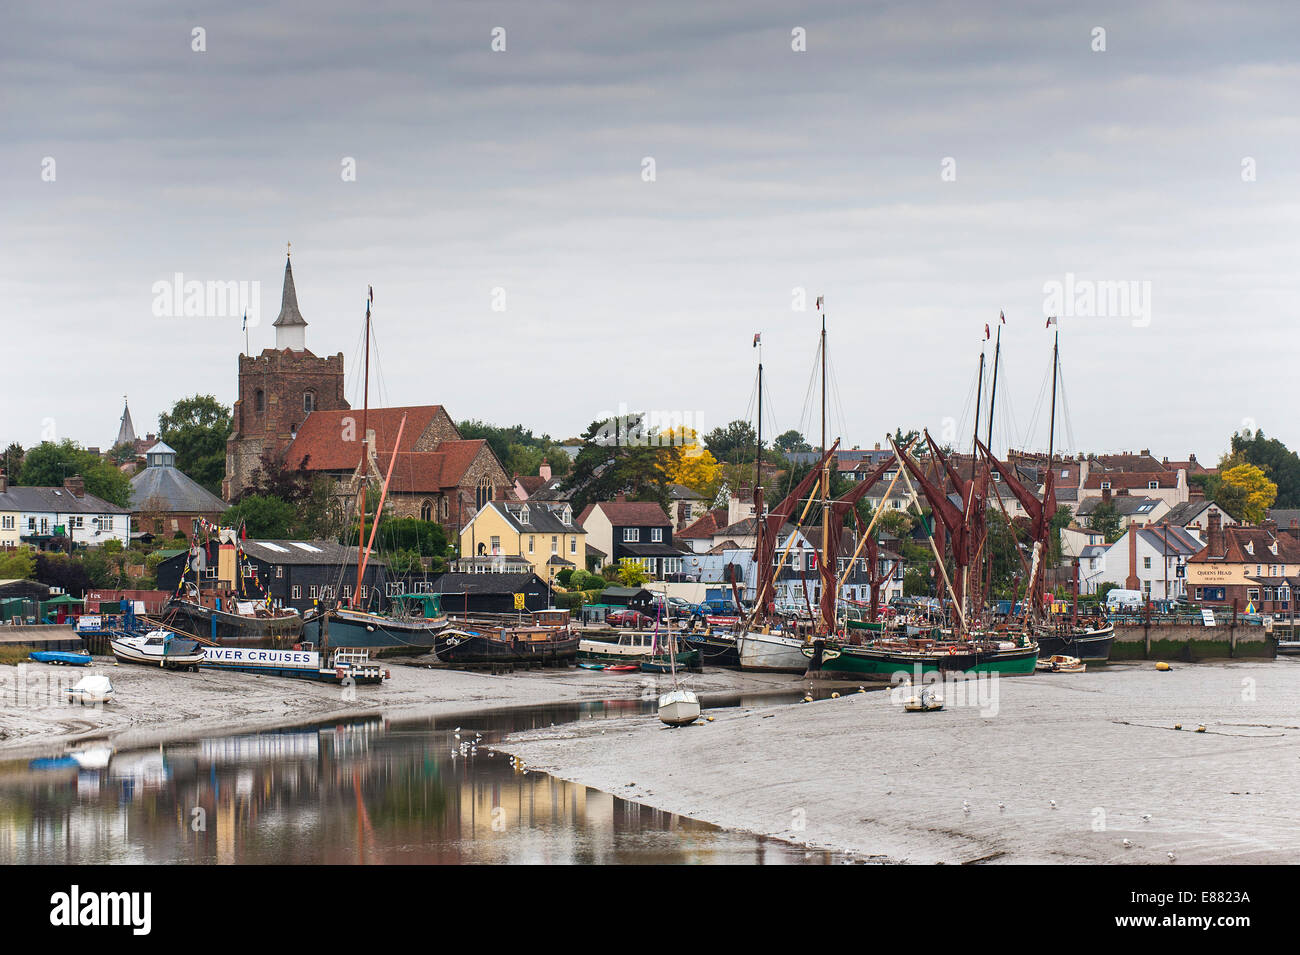 Hythe Quay in Maldon on the Blackwater River in Essex. - Stock Image